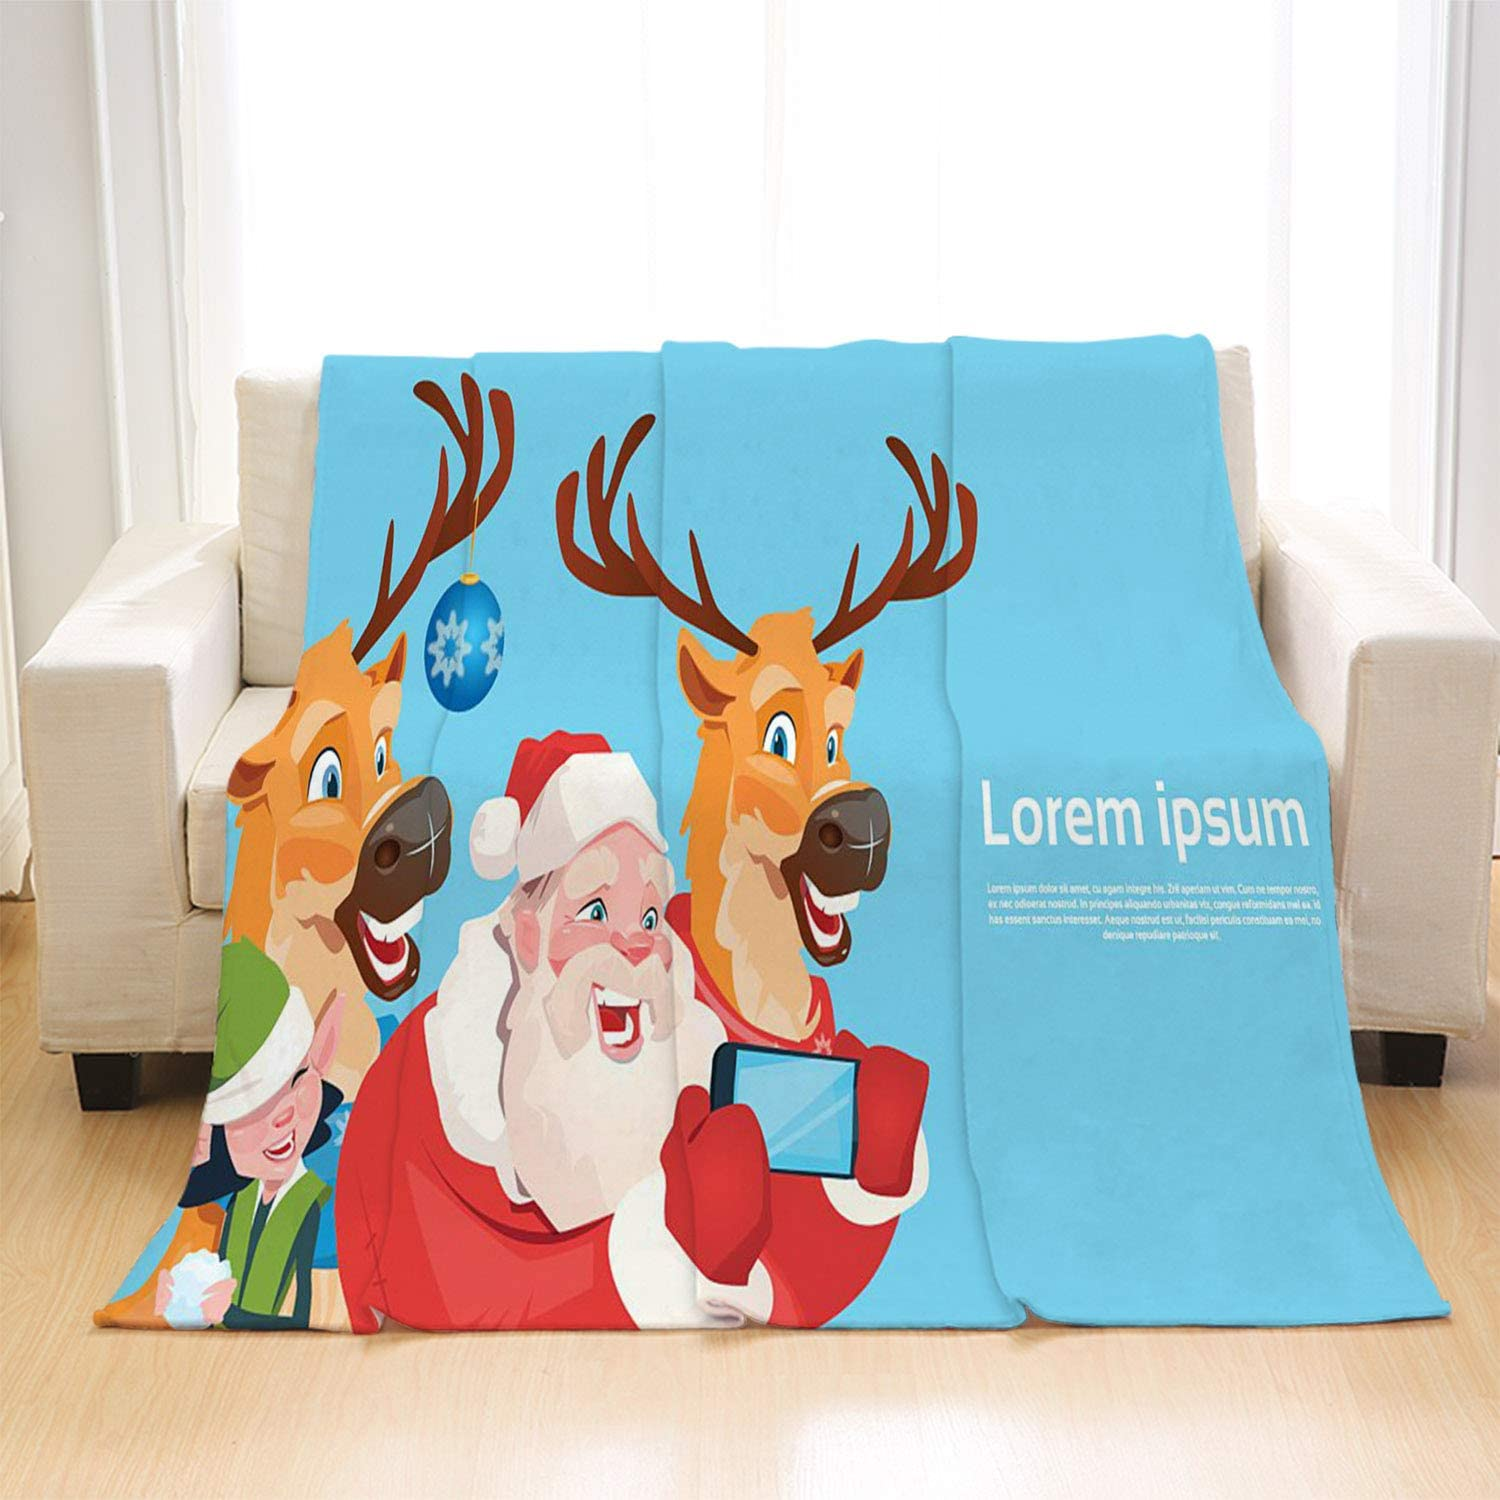 OTTOSUN Santa Claus Blanket Luxury Super Soft Throw Blanket,Santa Claus,Lightweight Warm Blanket for Bed Couch Sofa Outdoor Travel,Twin Size: 50Wx70L Inch